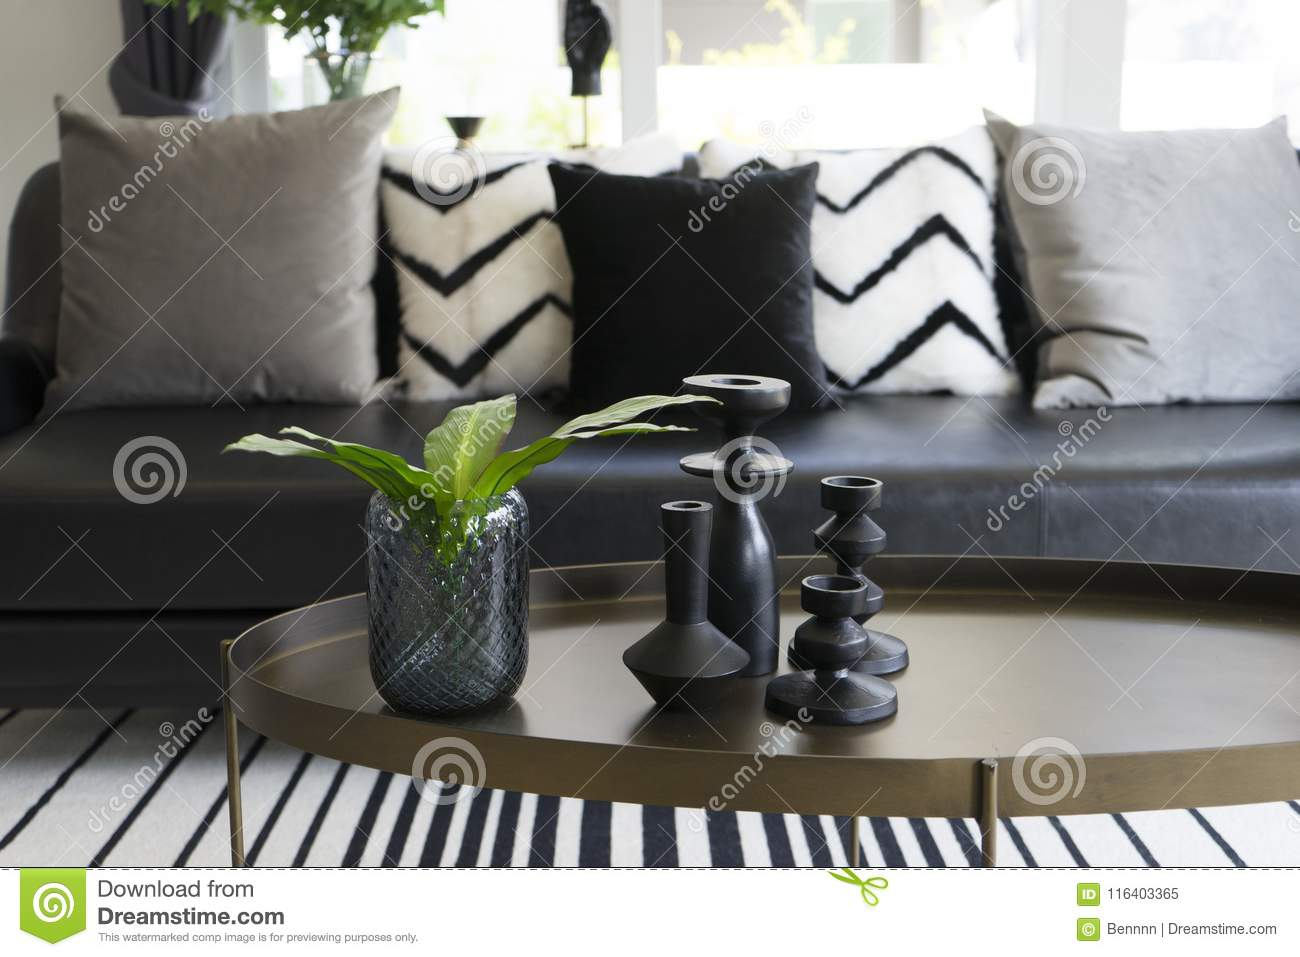 Modern Vase And Green Leaf On Center Table With Black And White Pillows On Sofa Stock Image Image Of Elegant Estate 116403365